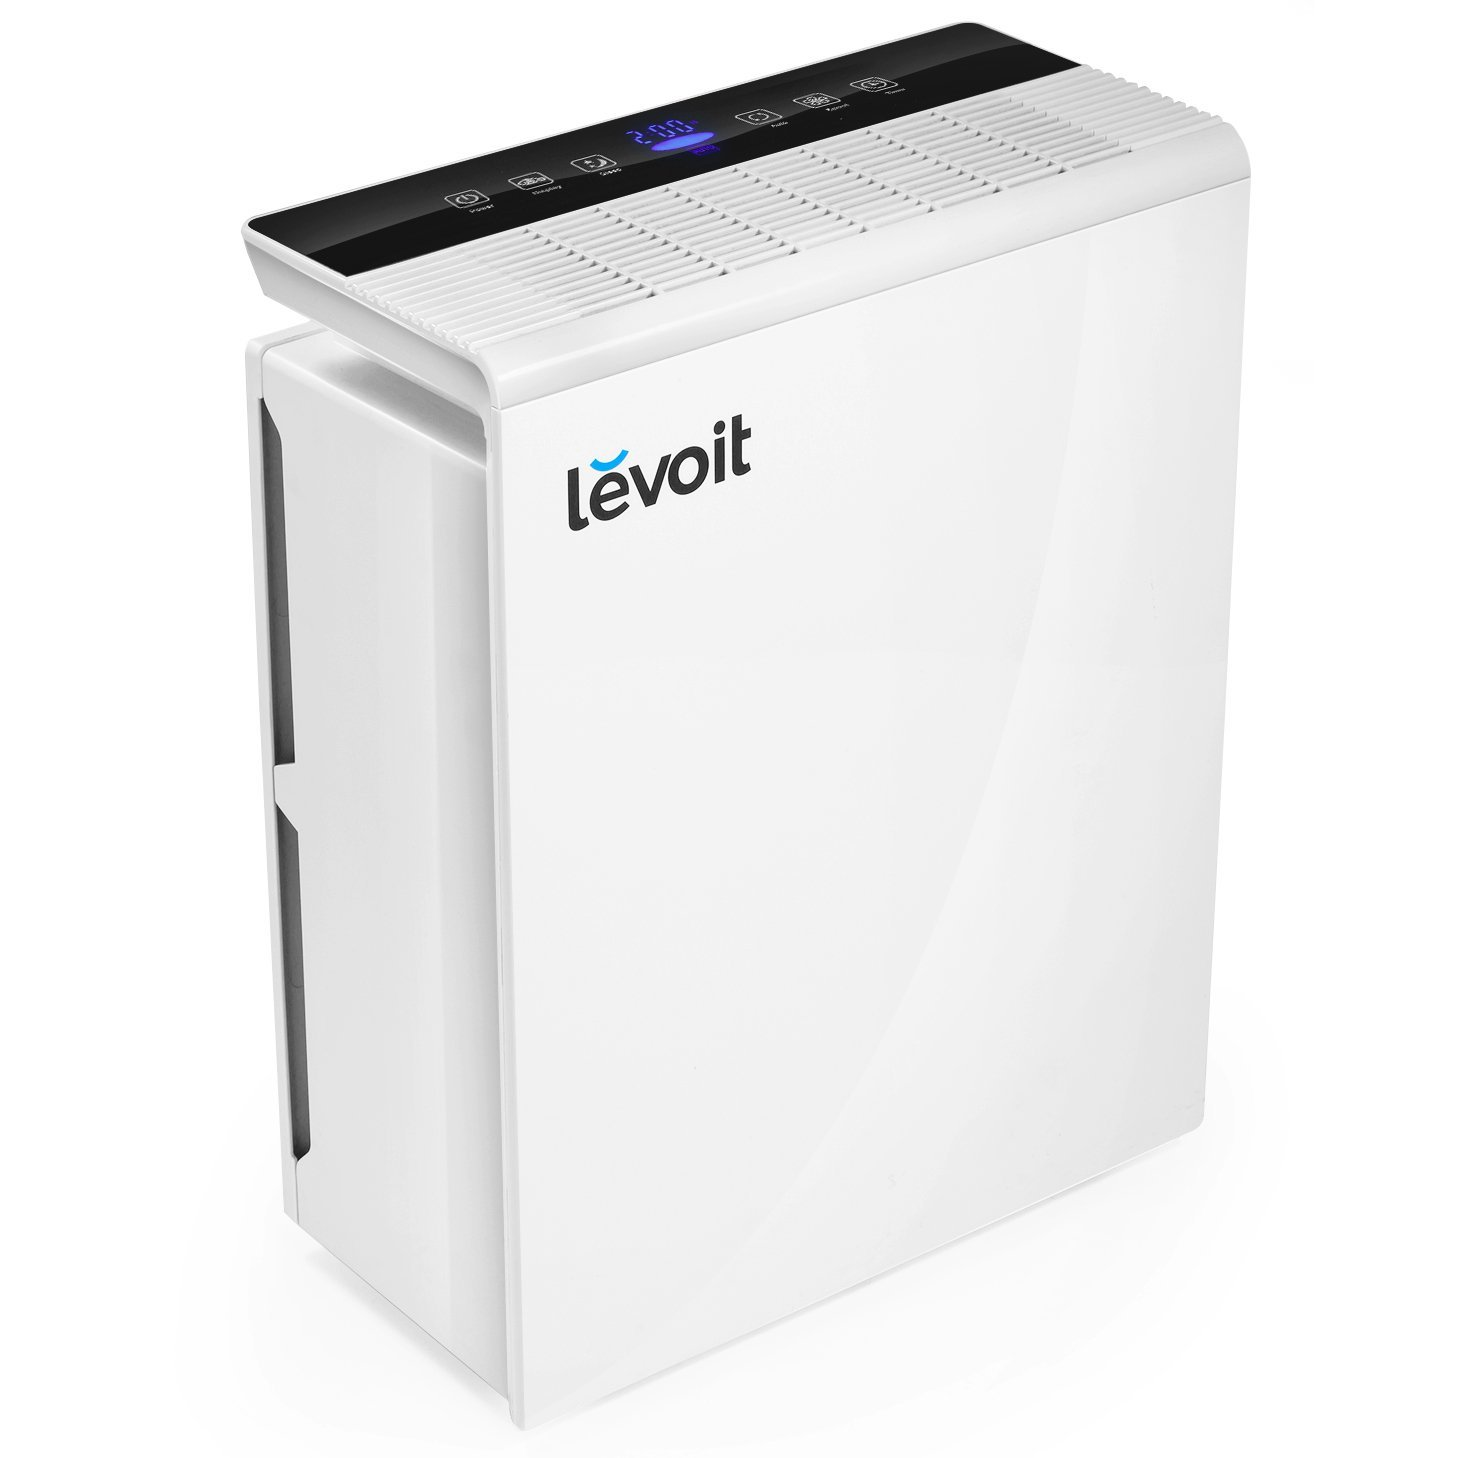 hot price levoit lv pur131